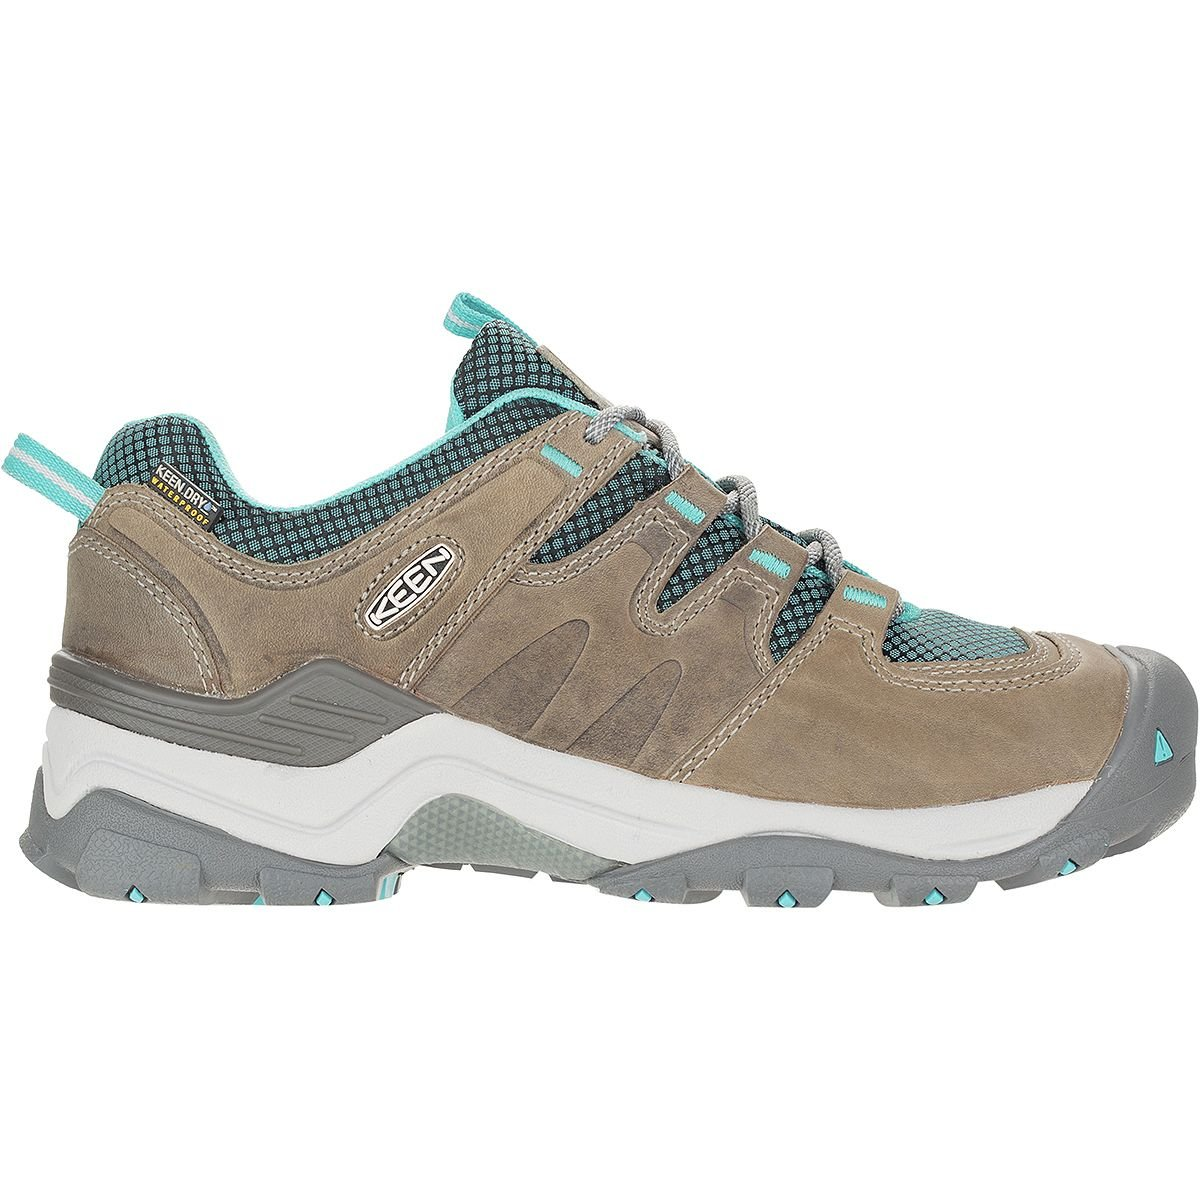 (キーン)KEEN Gypsum II Waterproof Hiking Shoe - Women'sメンズ バックパック リュック Neutral Gray/Radiance [並行輸入品] B079PQ1W3D  7